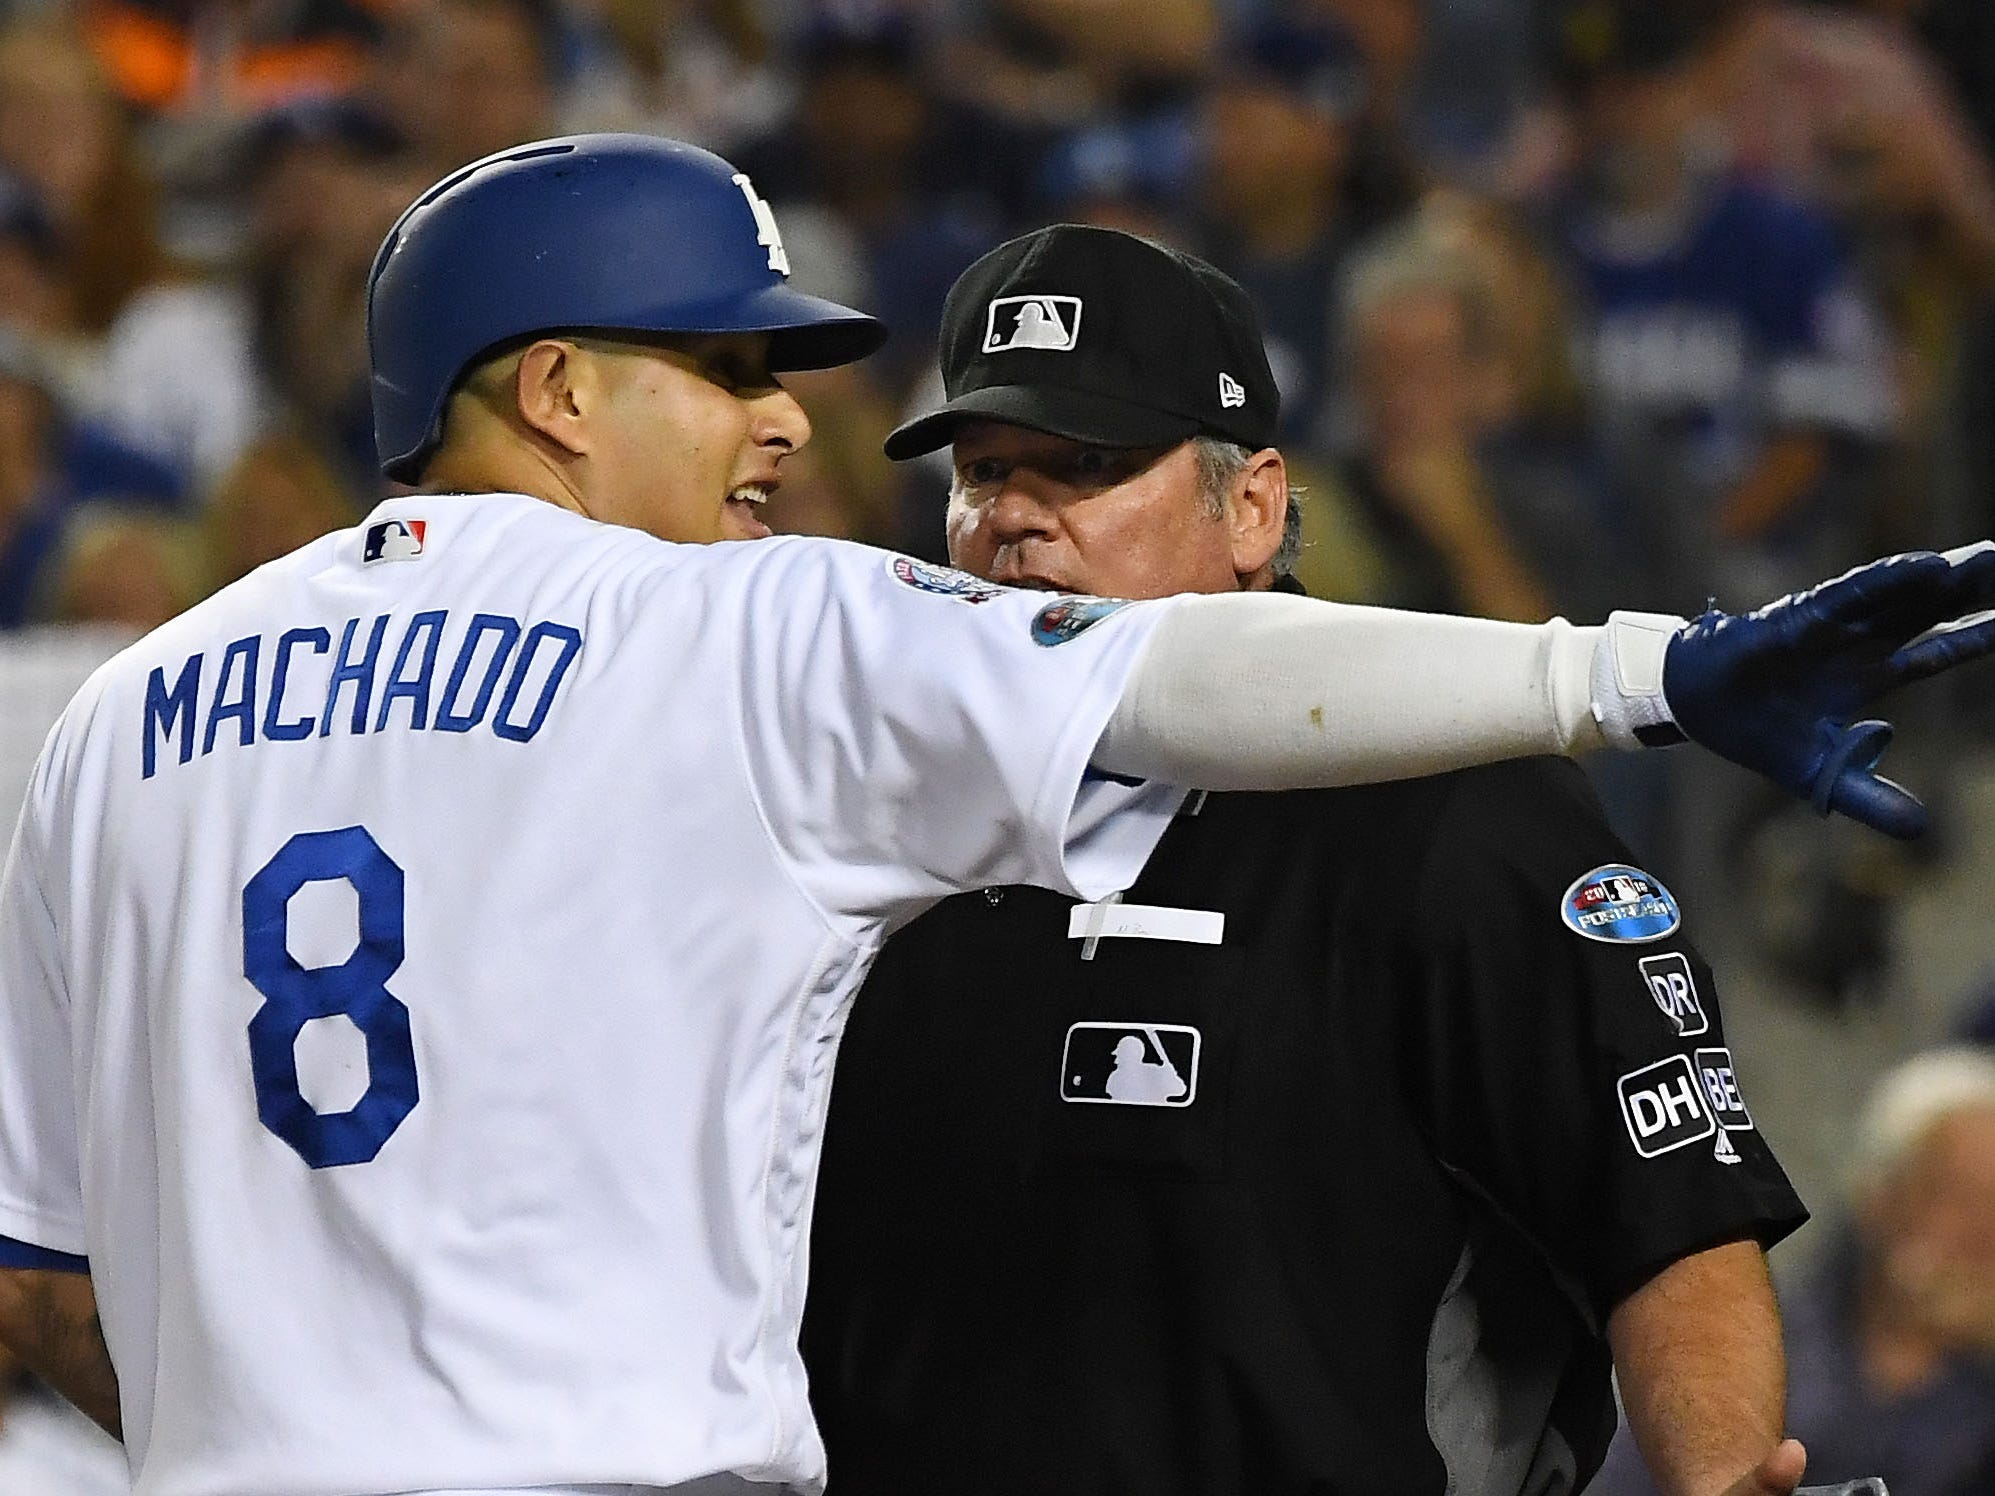 NLCS Game 4: Dodgers shortstop Manny Machado argues with home plate umpire Hunter Wendelstedt after striking out, claiming he called timeout before the pitch in the fifth inning.